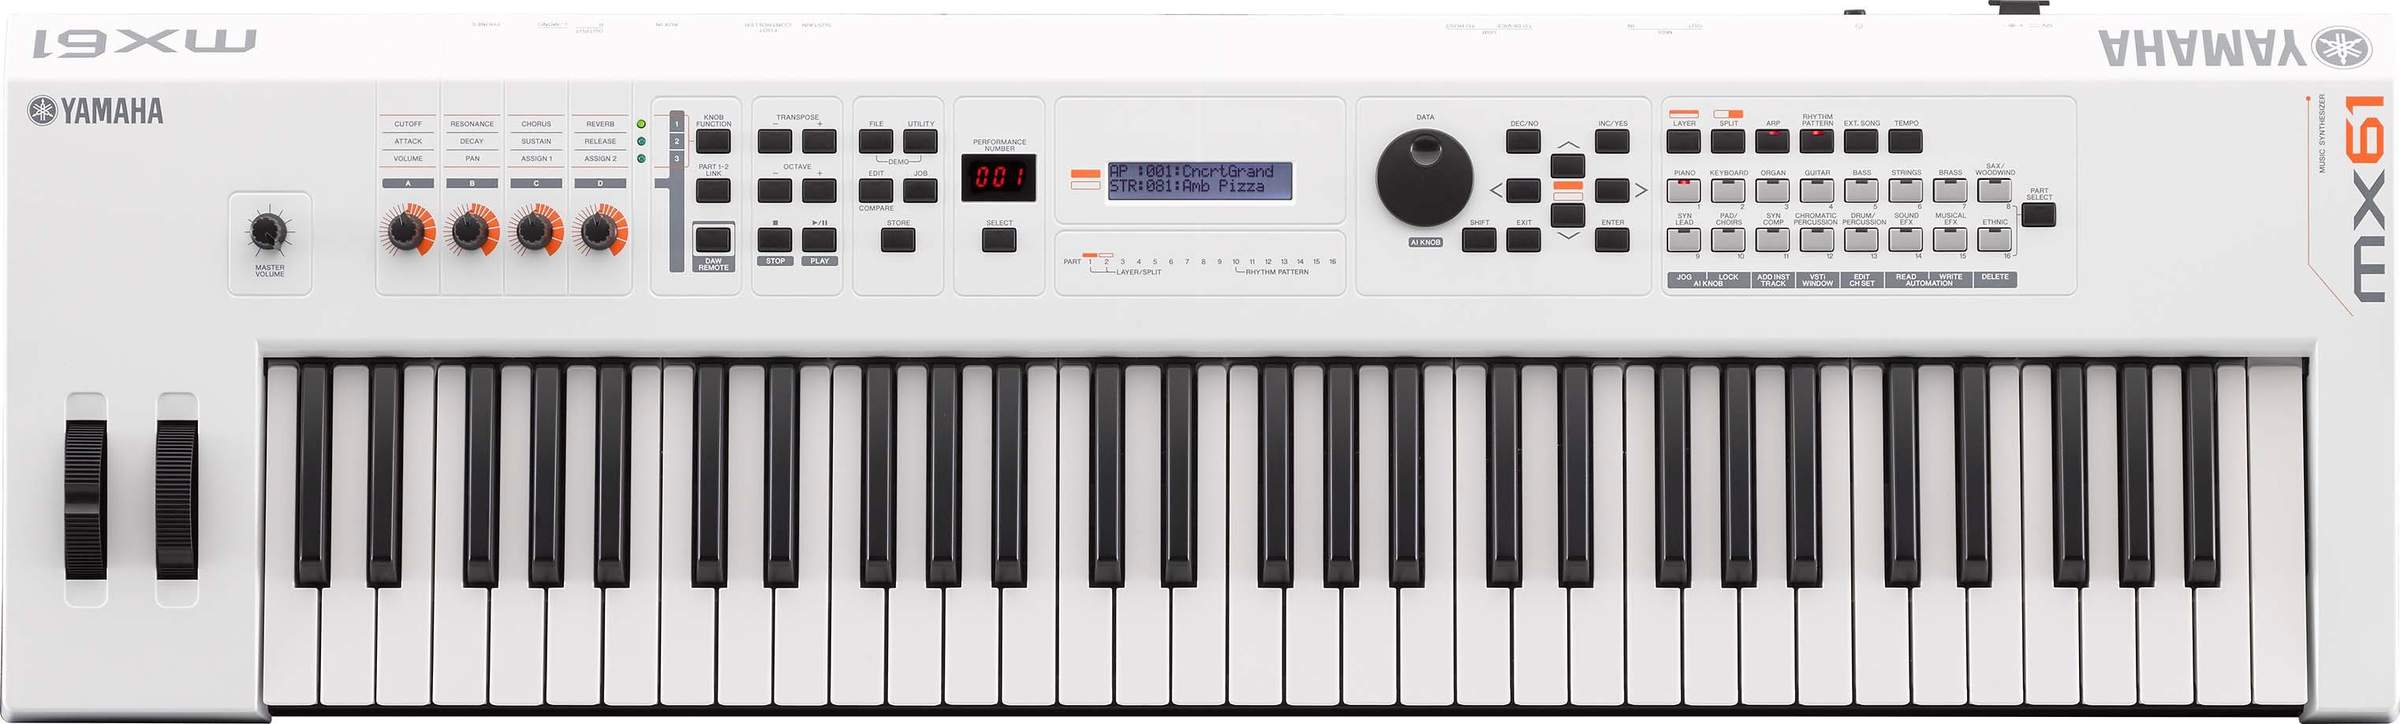 Yamaha Mx Keyboard